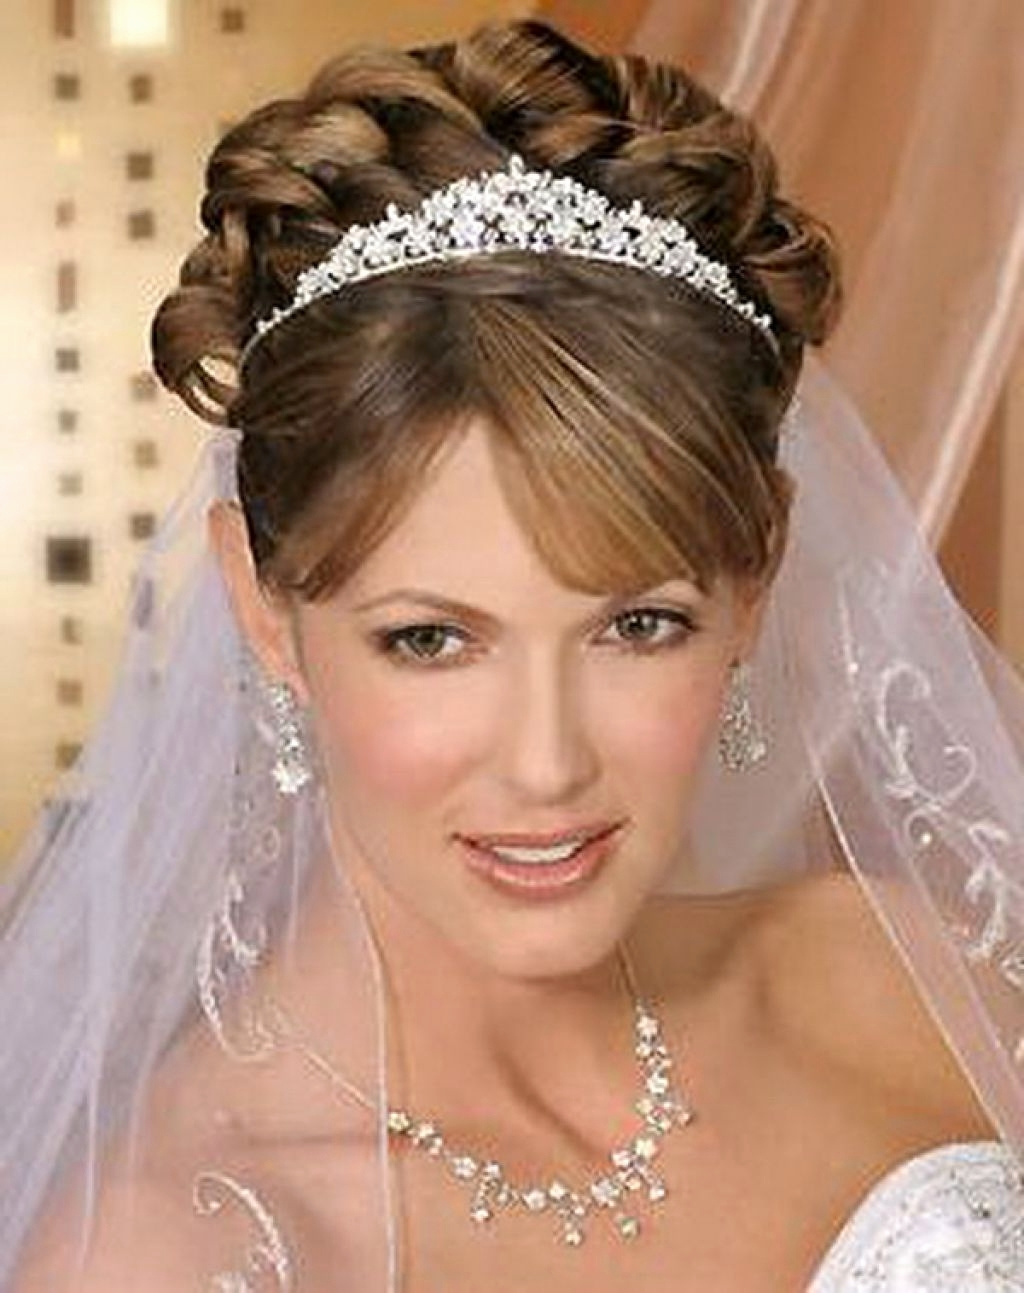 Wedding Hairstyles With Tiara Unique Simple Wedding Hairstyles For Intended For Most Recent Wedding Hairstyles For Short Hair With Tiara (View 14 of 15)